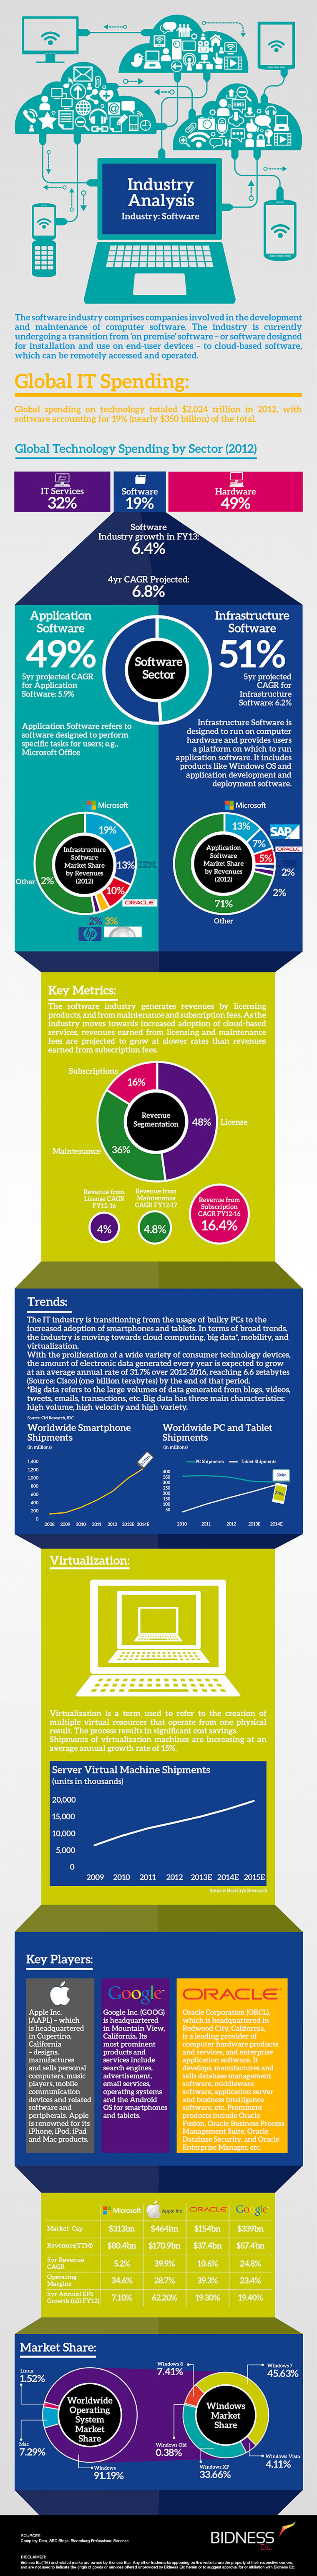 Microsoft (MSFT) Industry Analysis Infographic